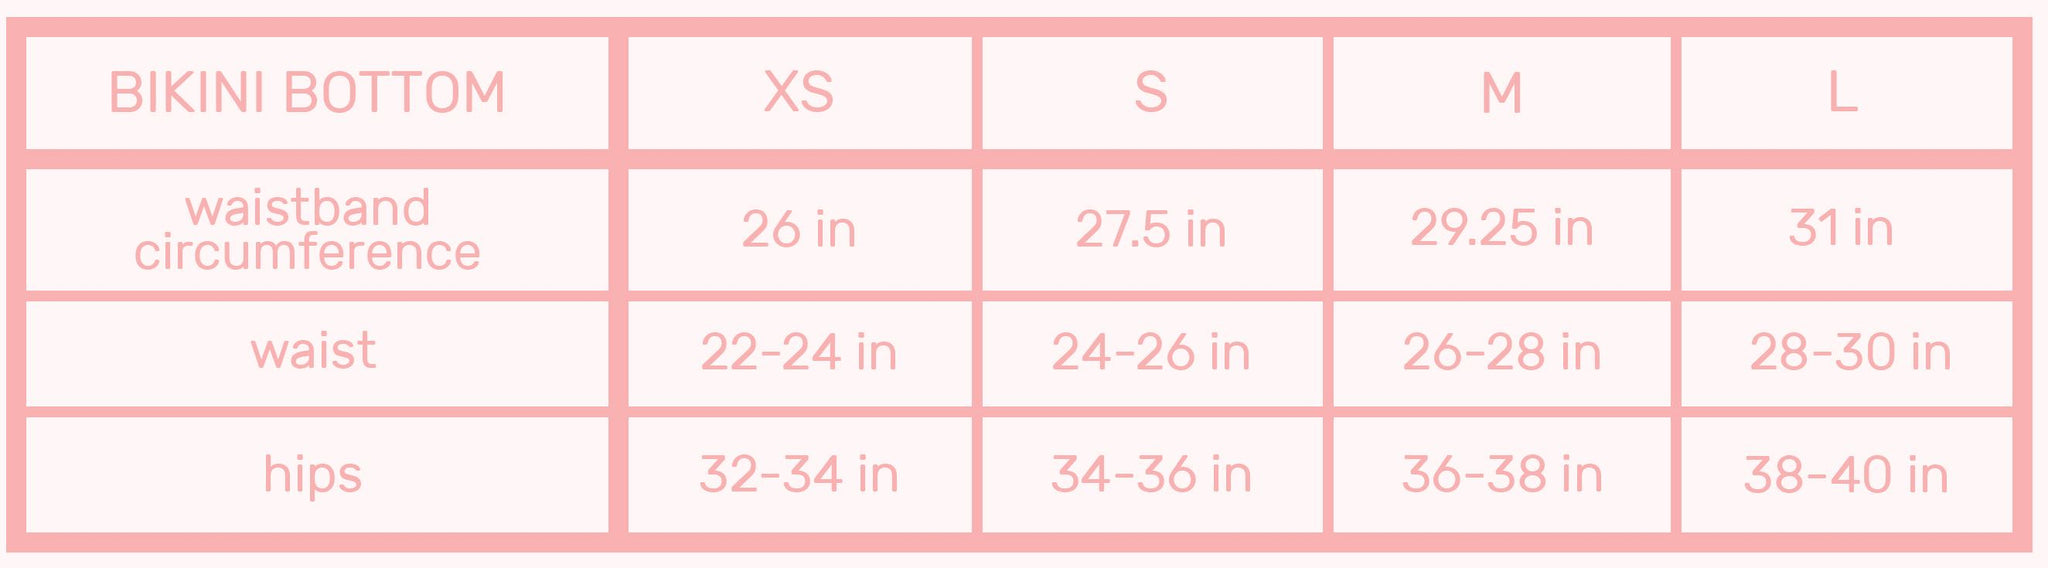 neoprene bikini bottom sizes chart